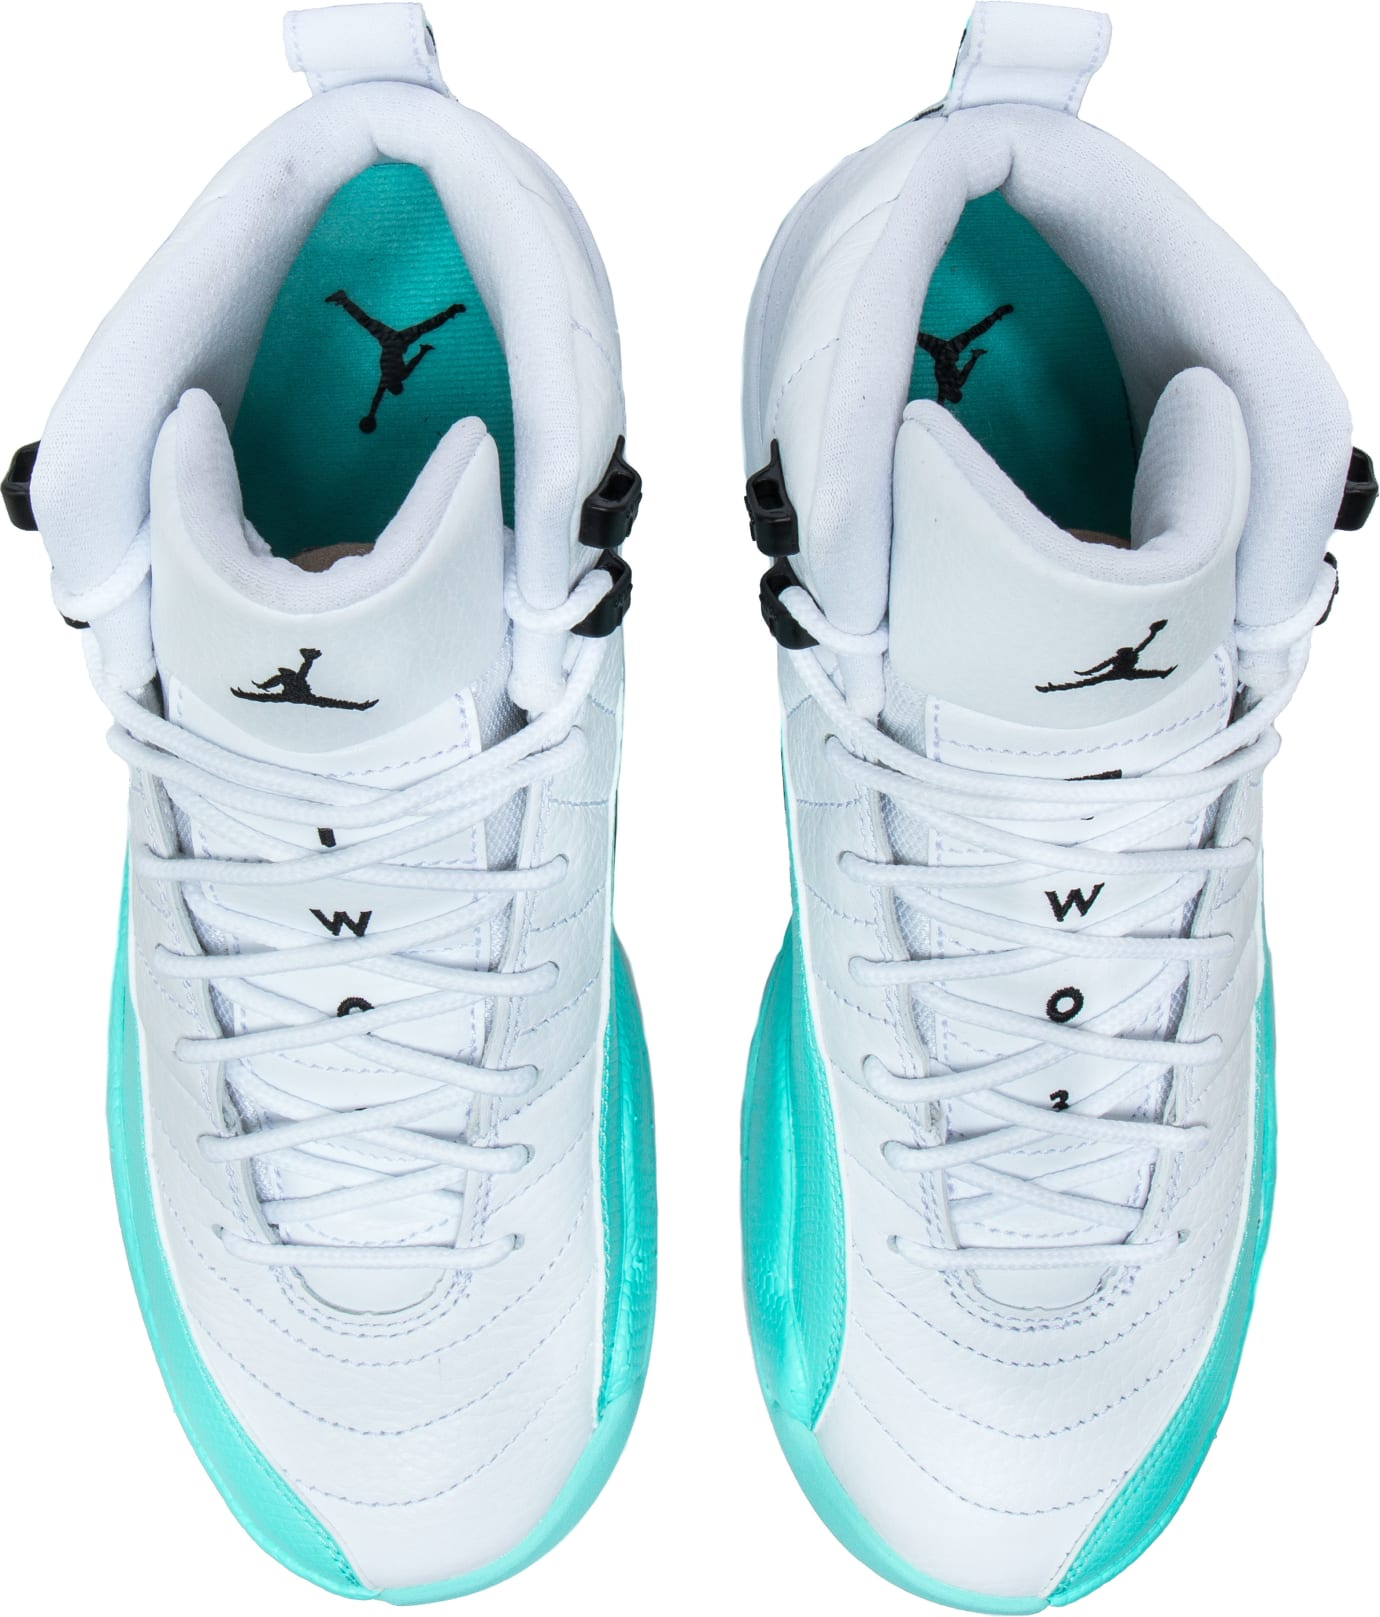 3749bcde60a63a Image via Shoe Palace Air Jordan 12 XII Retro GG  White Light Aqua Black   510815-